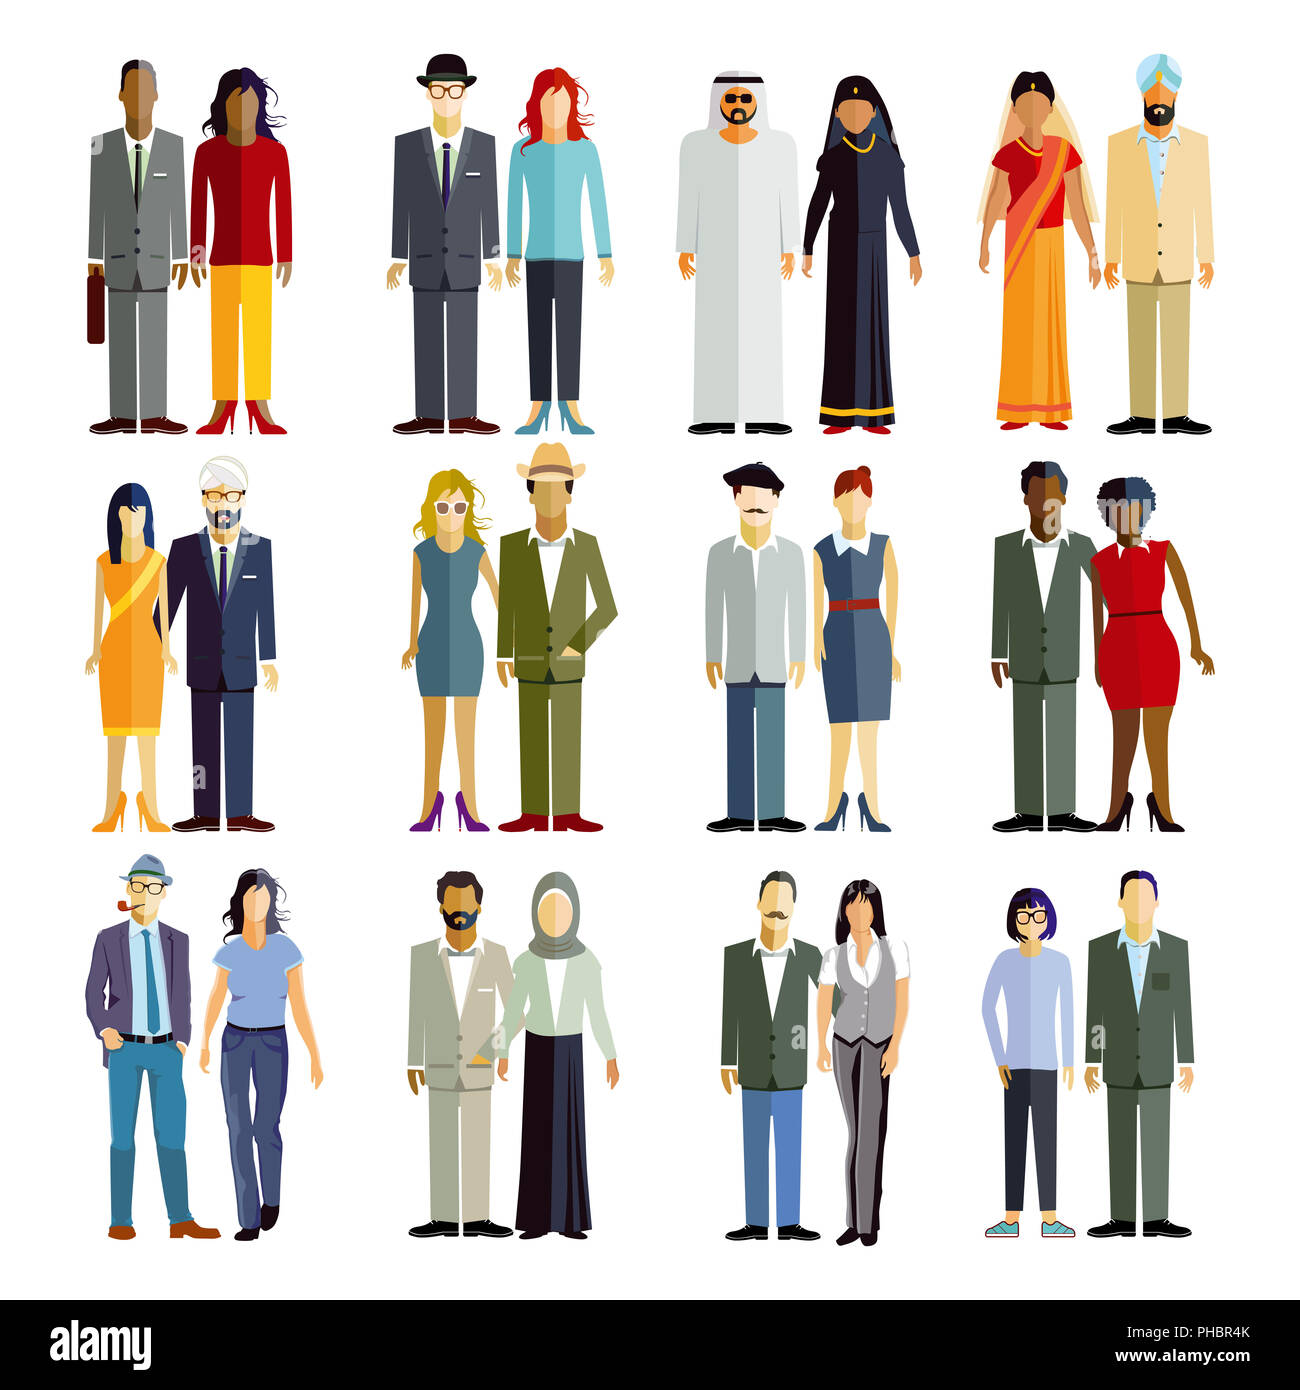 an international group of persons - Stock Image